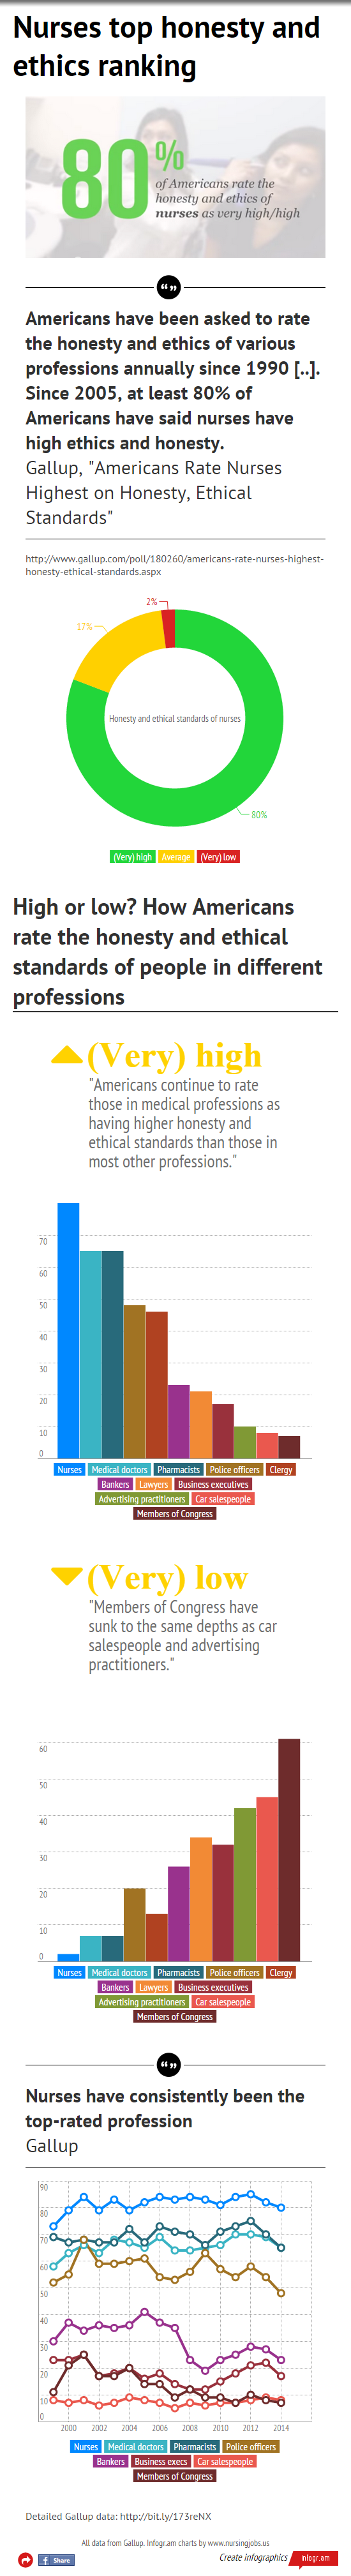 Nurses top honesty and ethics ranking: Infographic